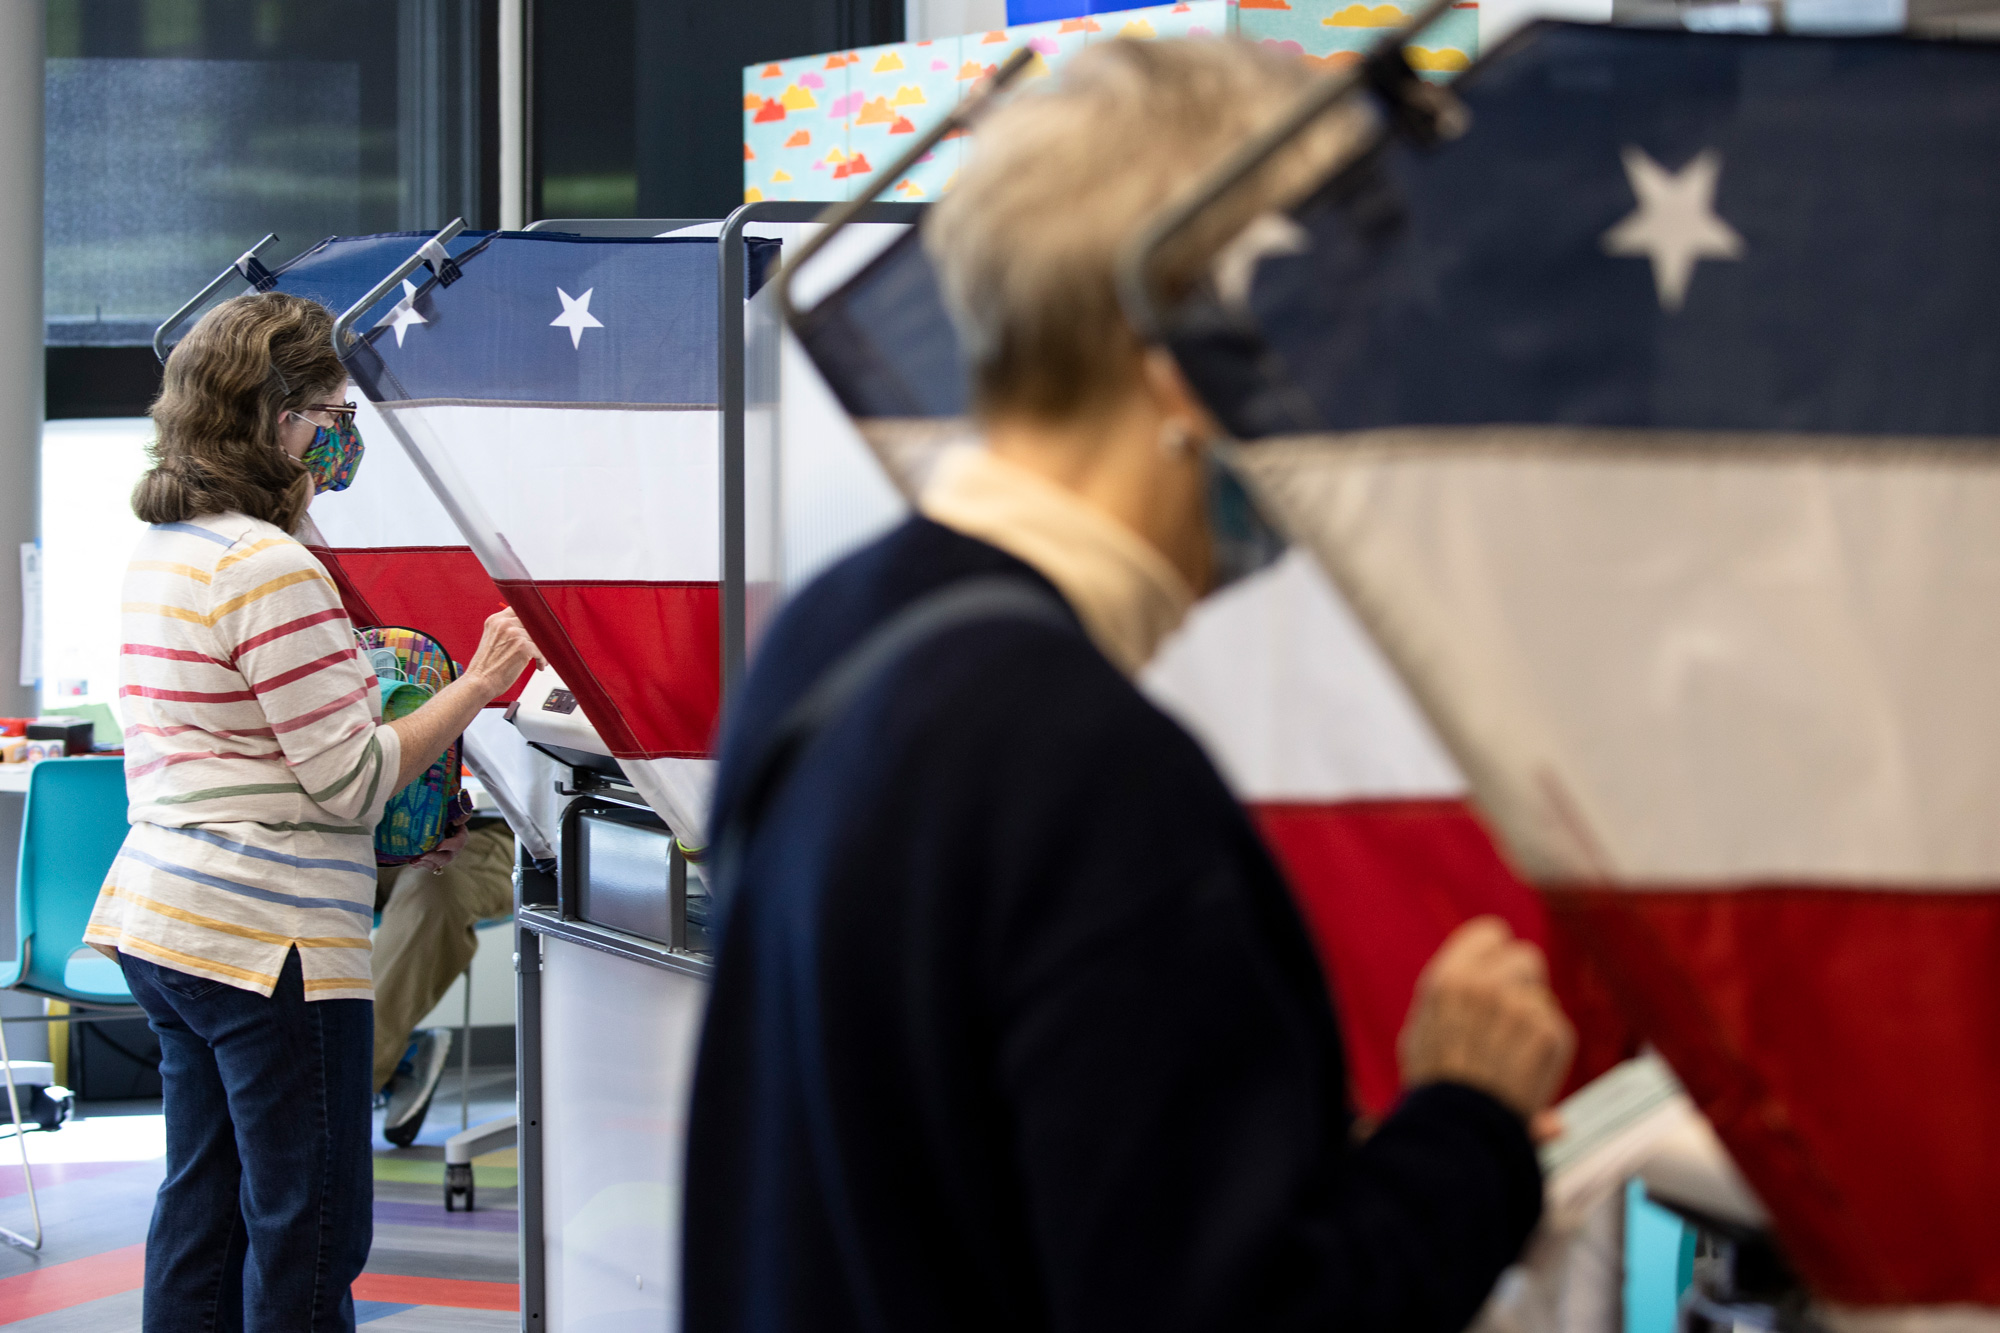 Voters cast their ballots during early voting at a Nashville Public Library building on October 14 in Nashville, Tennessee.